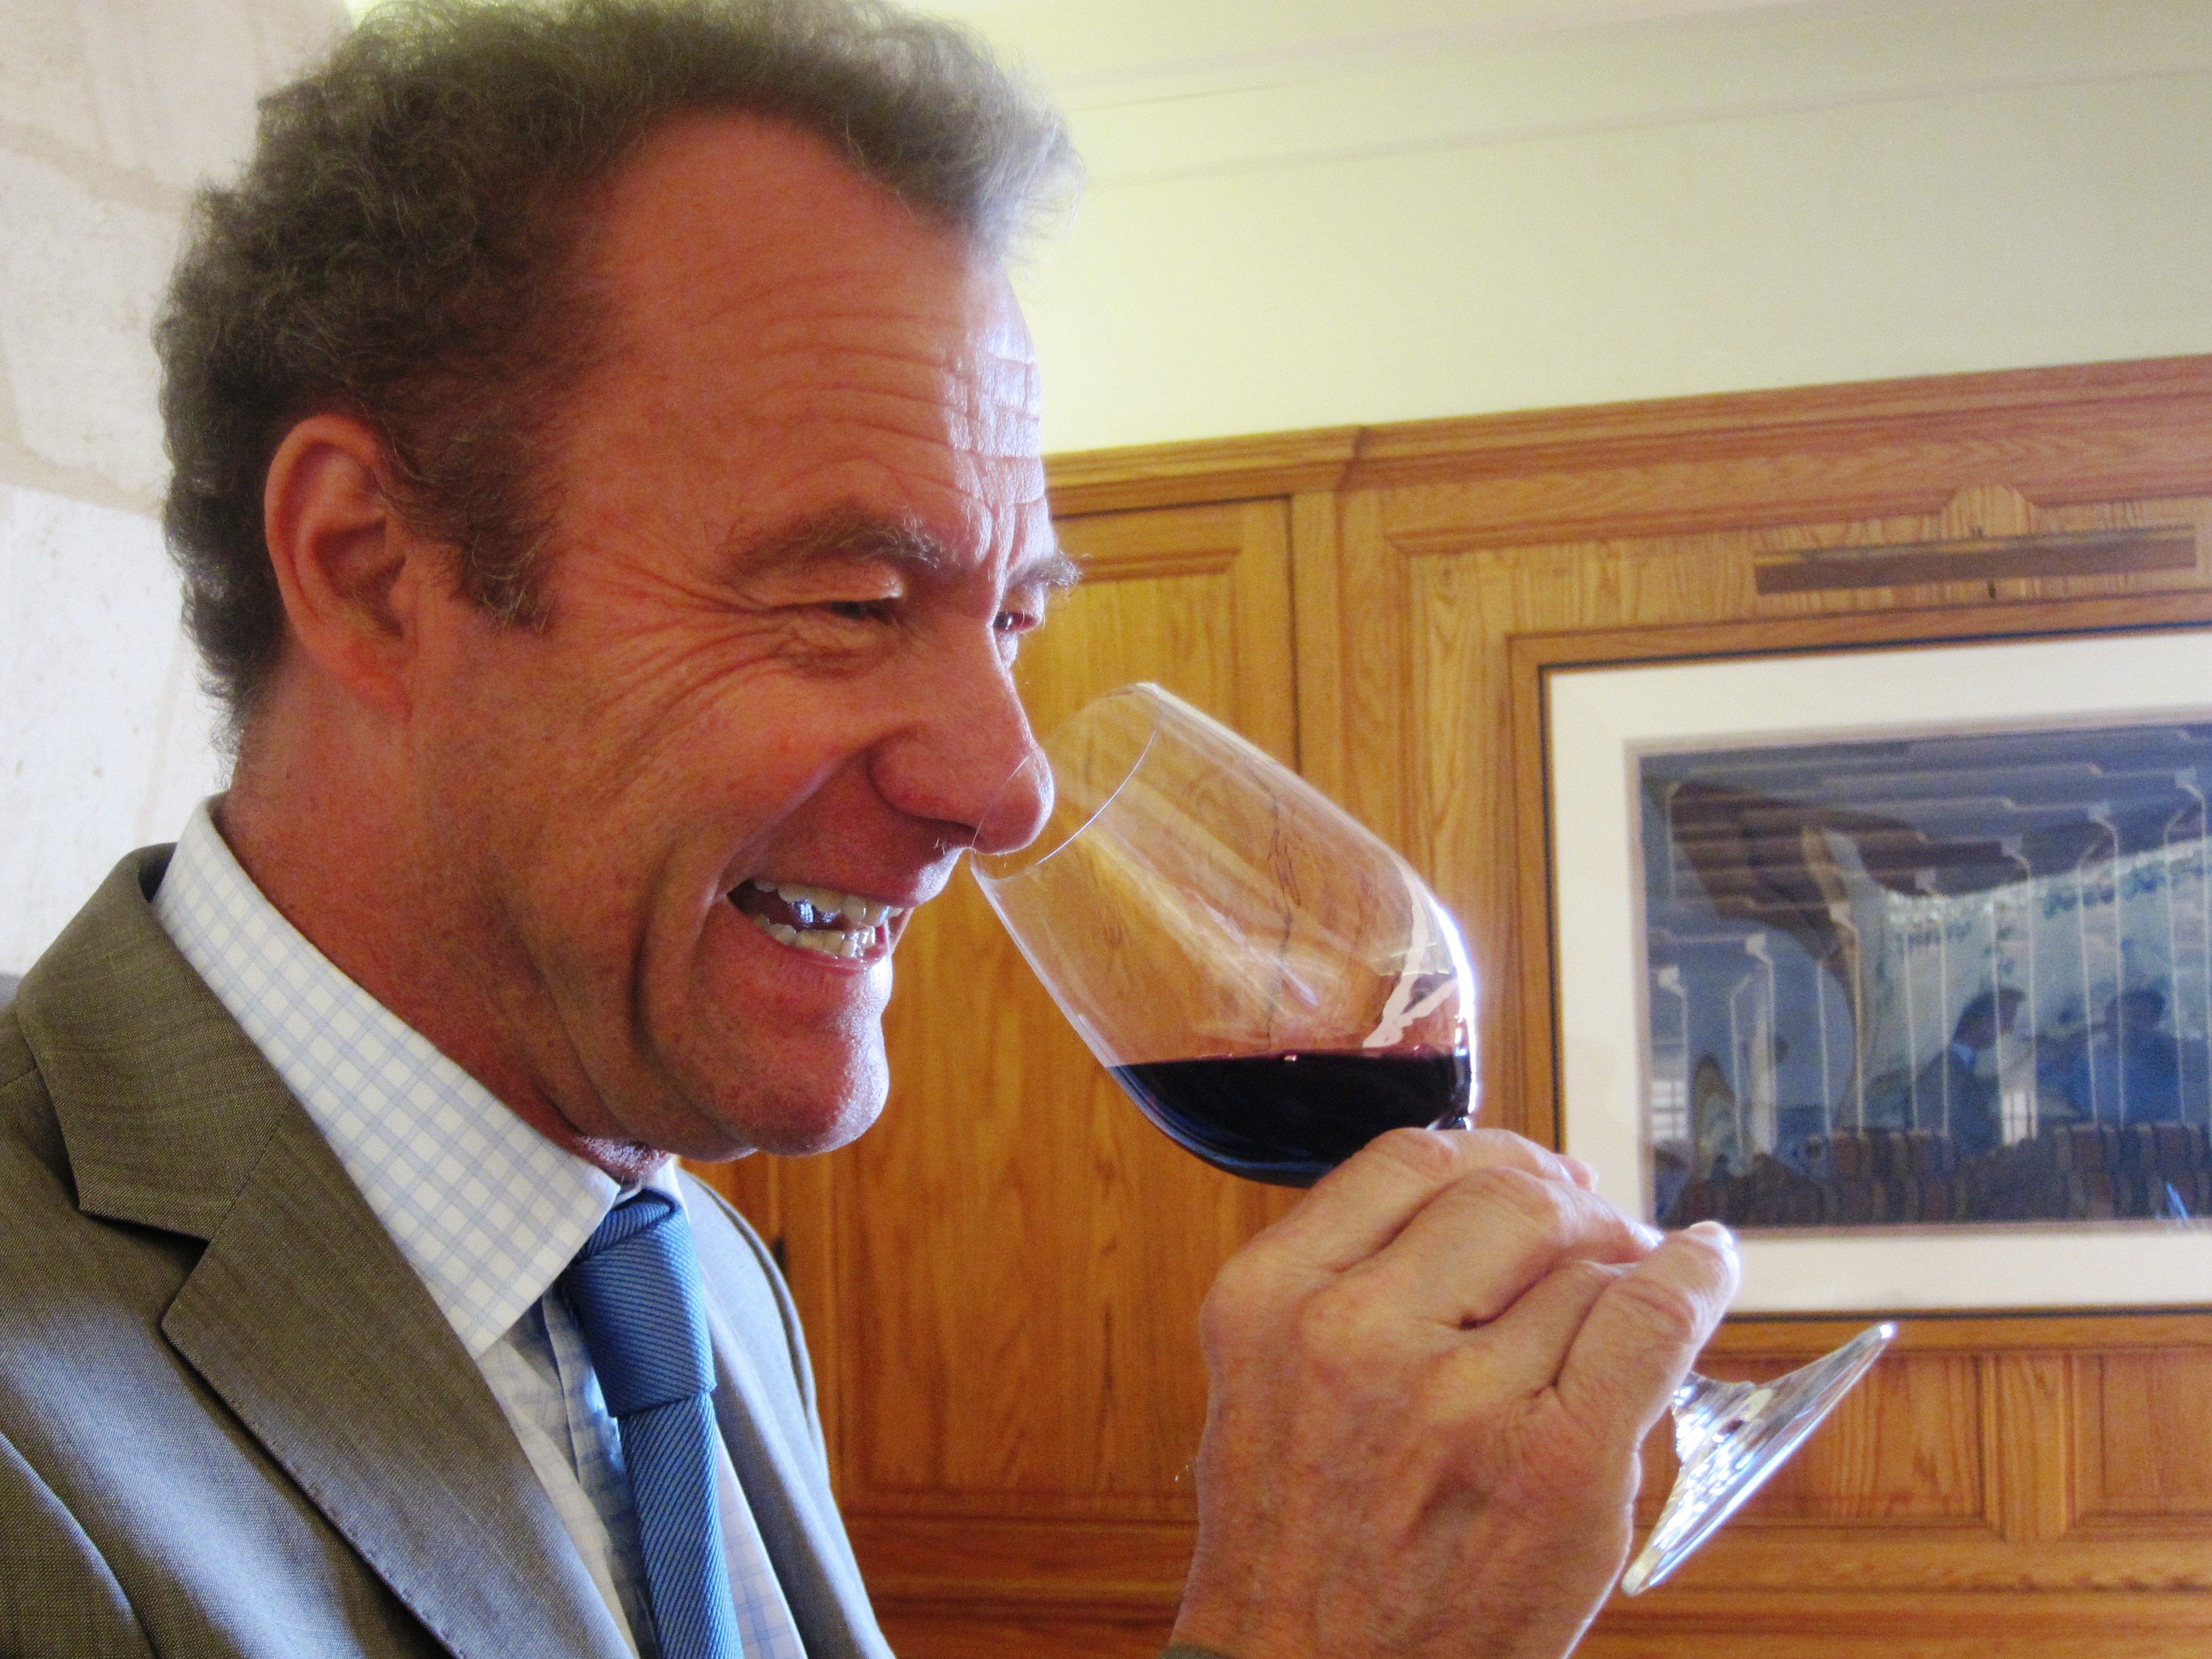 2010 Chateau Margaux, 2009, 1996 Margaux Tasting with Paul Pontallier